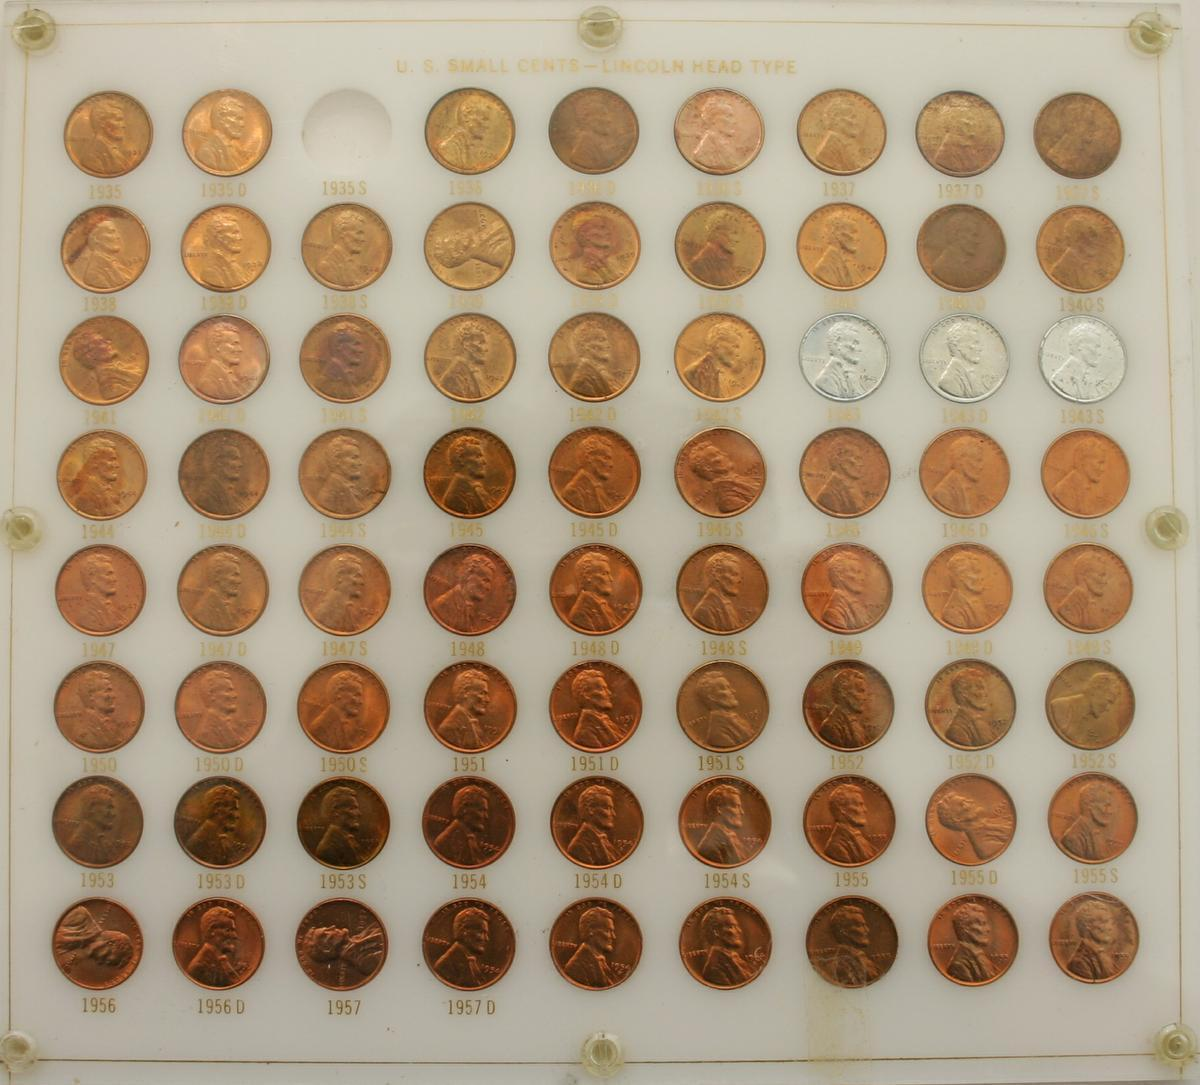 U.S. Small Cents - Lincoln Head Type - BU 1935-1957-D in Capitol Plastic Hold...